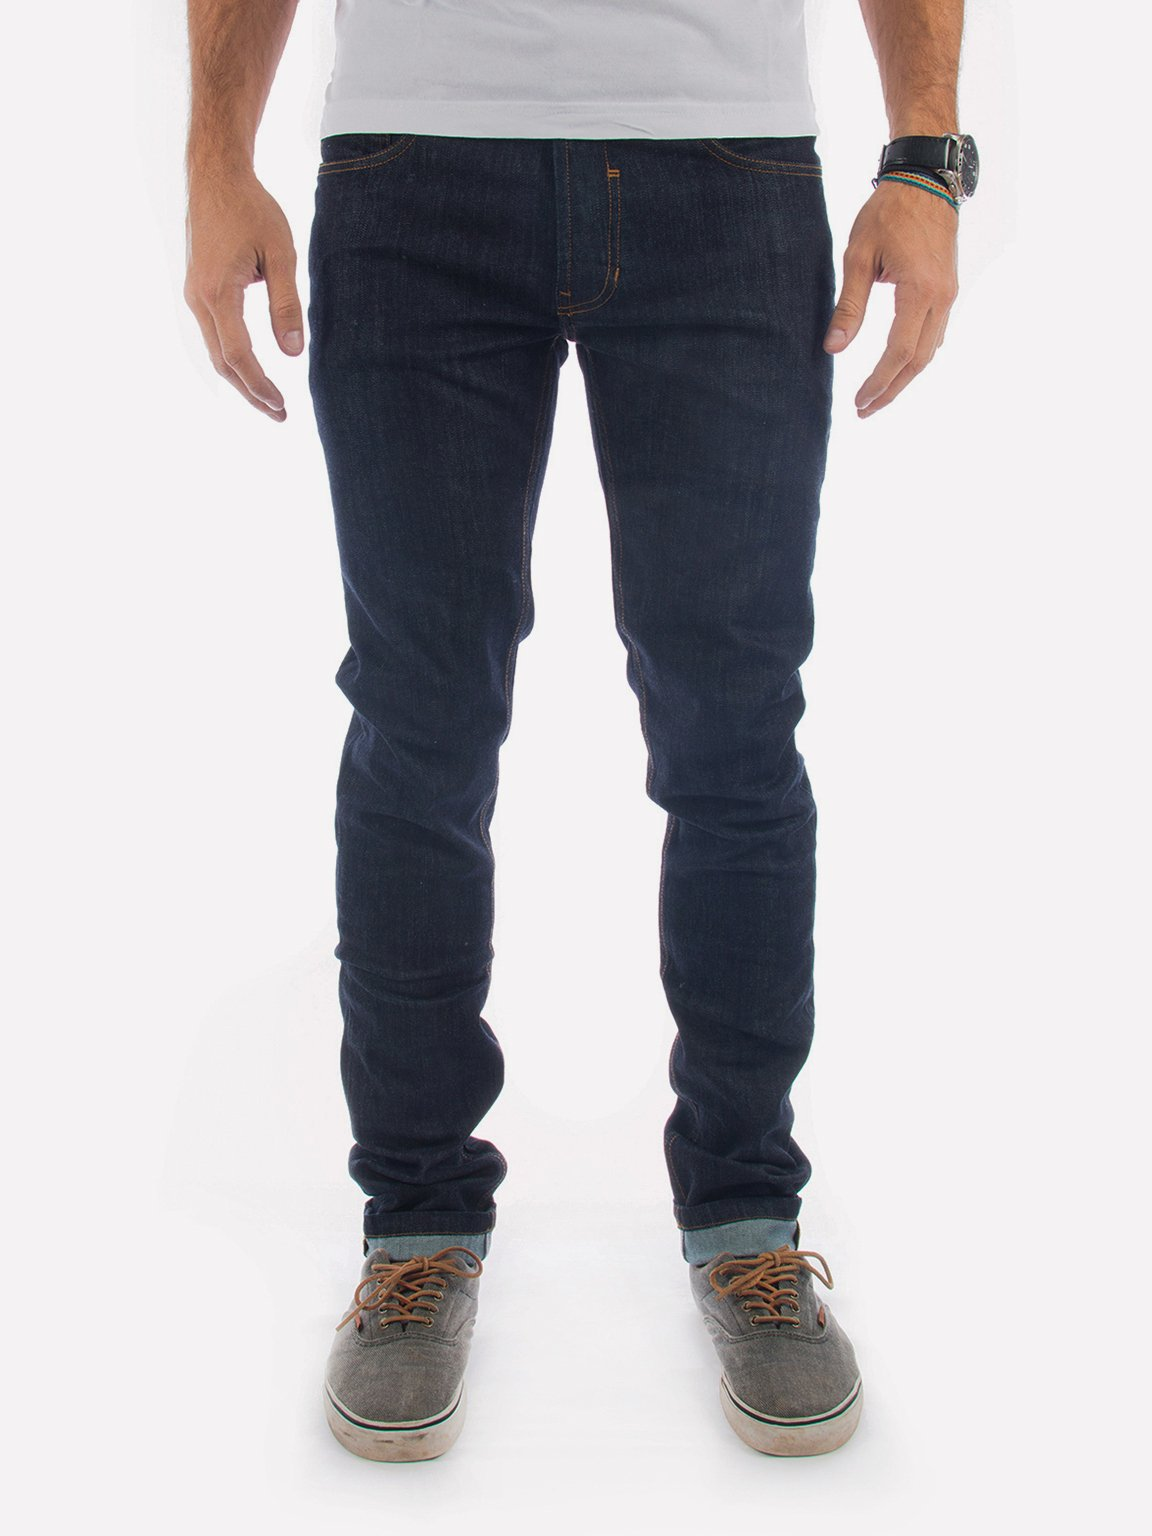 Foto do CALÇA JEANS IVEN SLIM DEEP BLUE